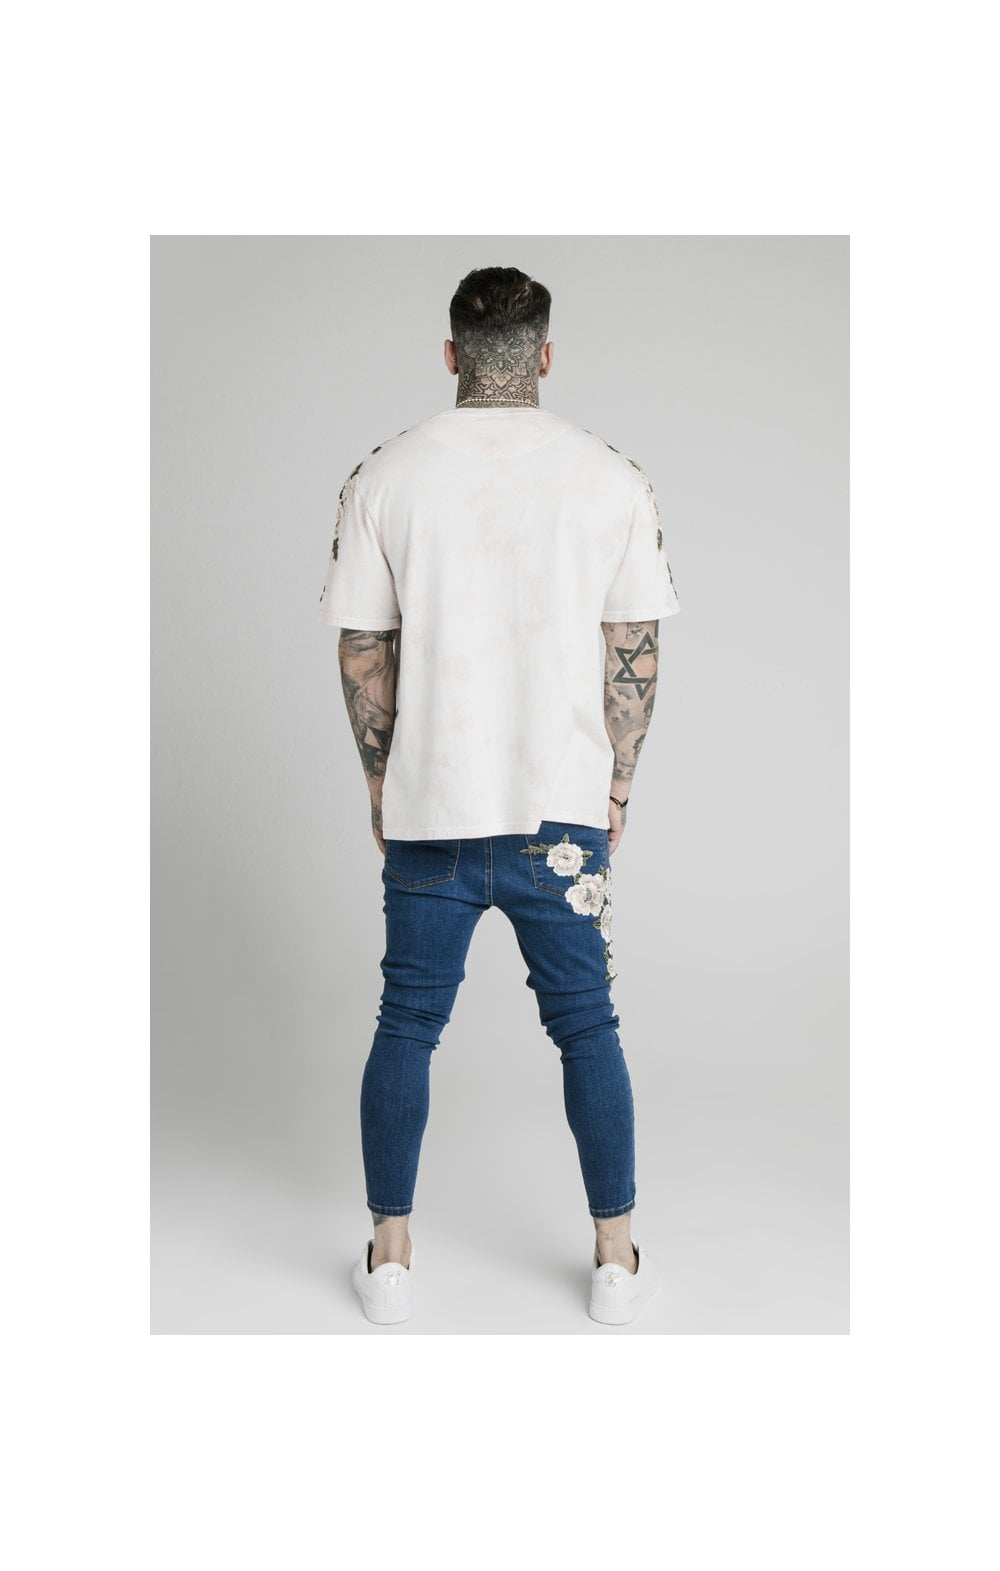 Load image into Gallery viewer, SikSilk Drop Crotch Pleated Appliqu Denims - Midstone (5)